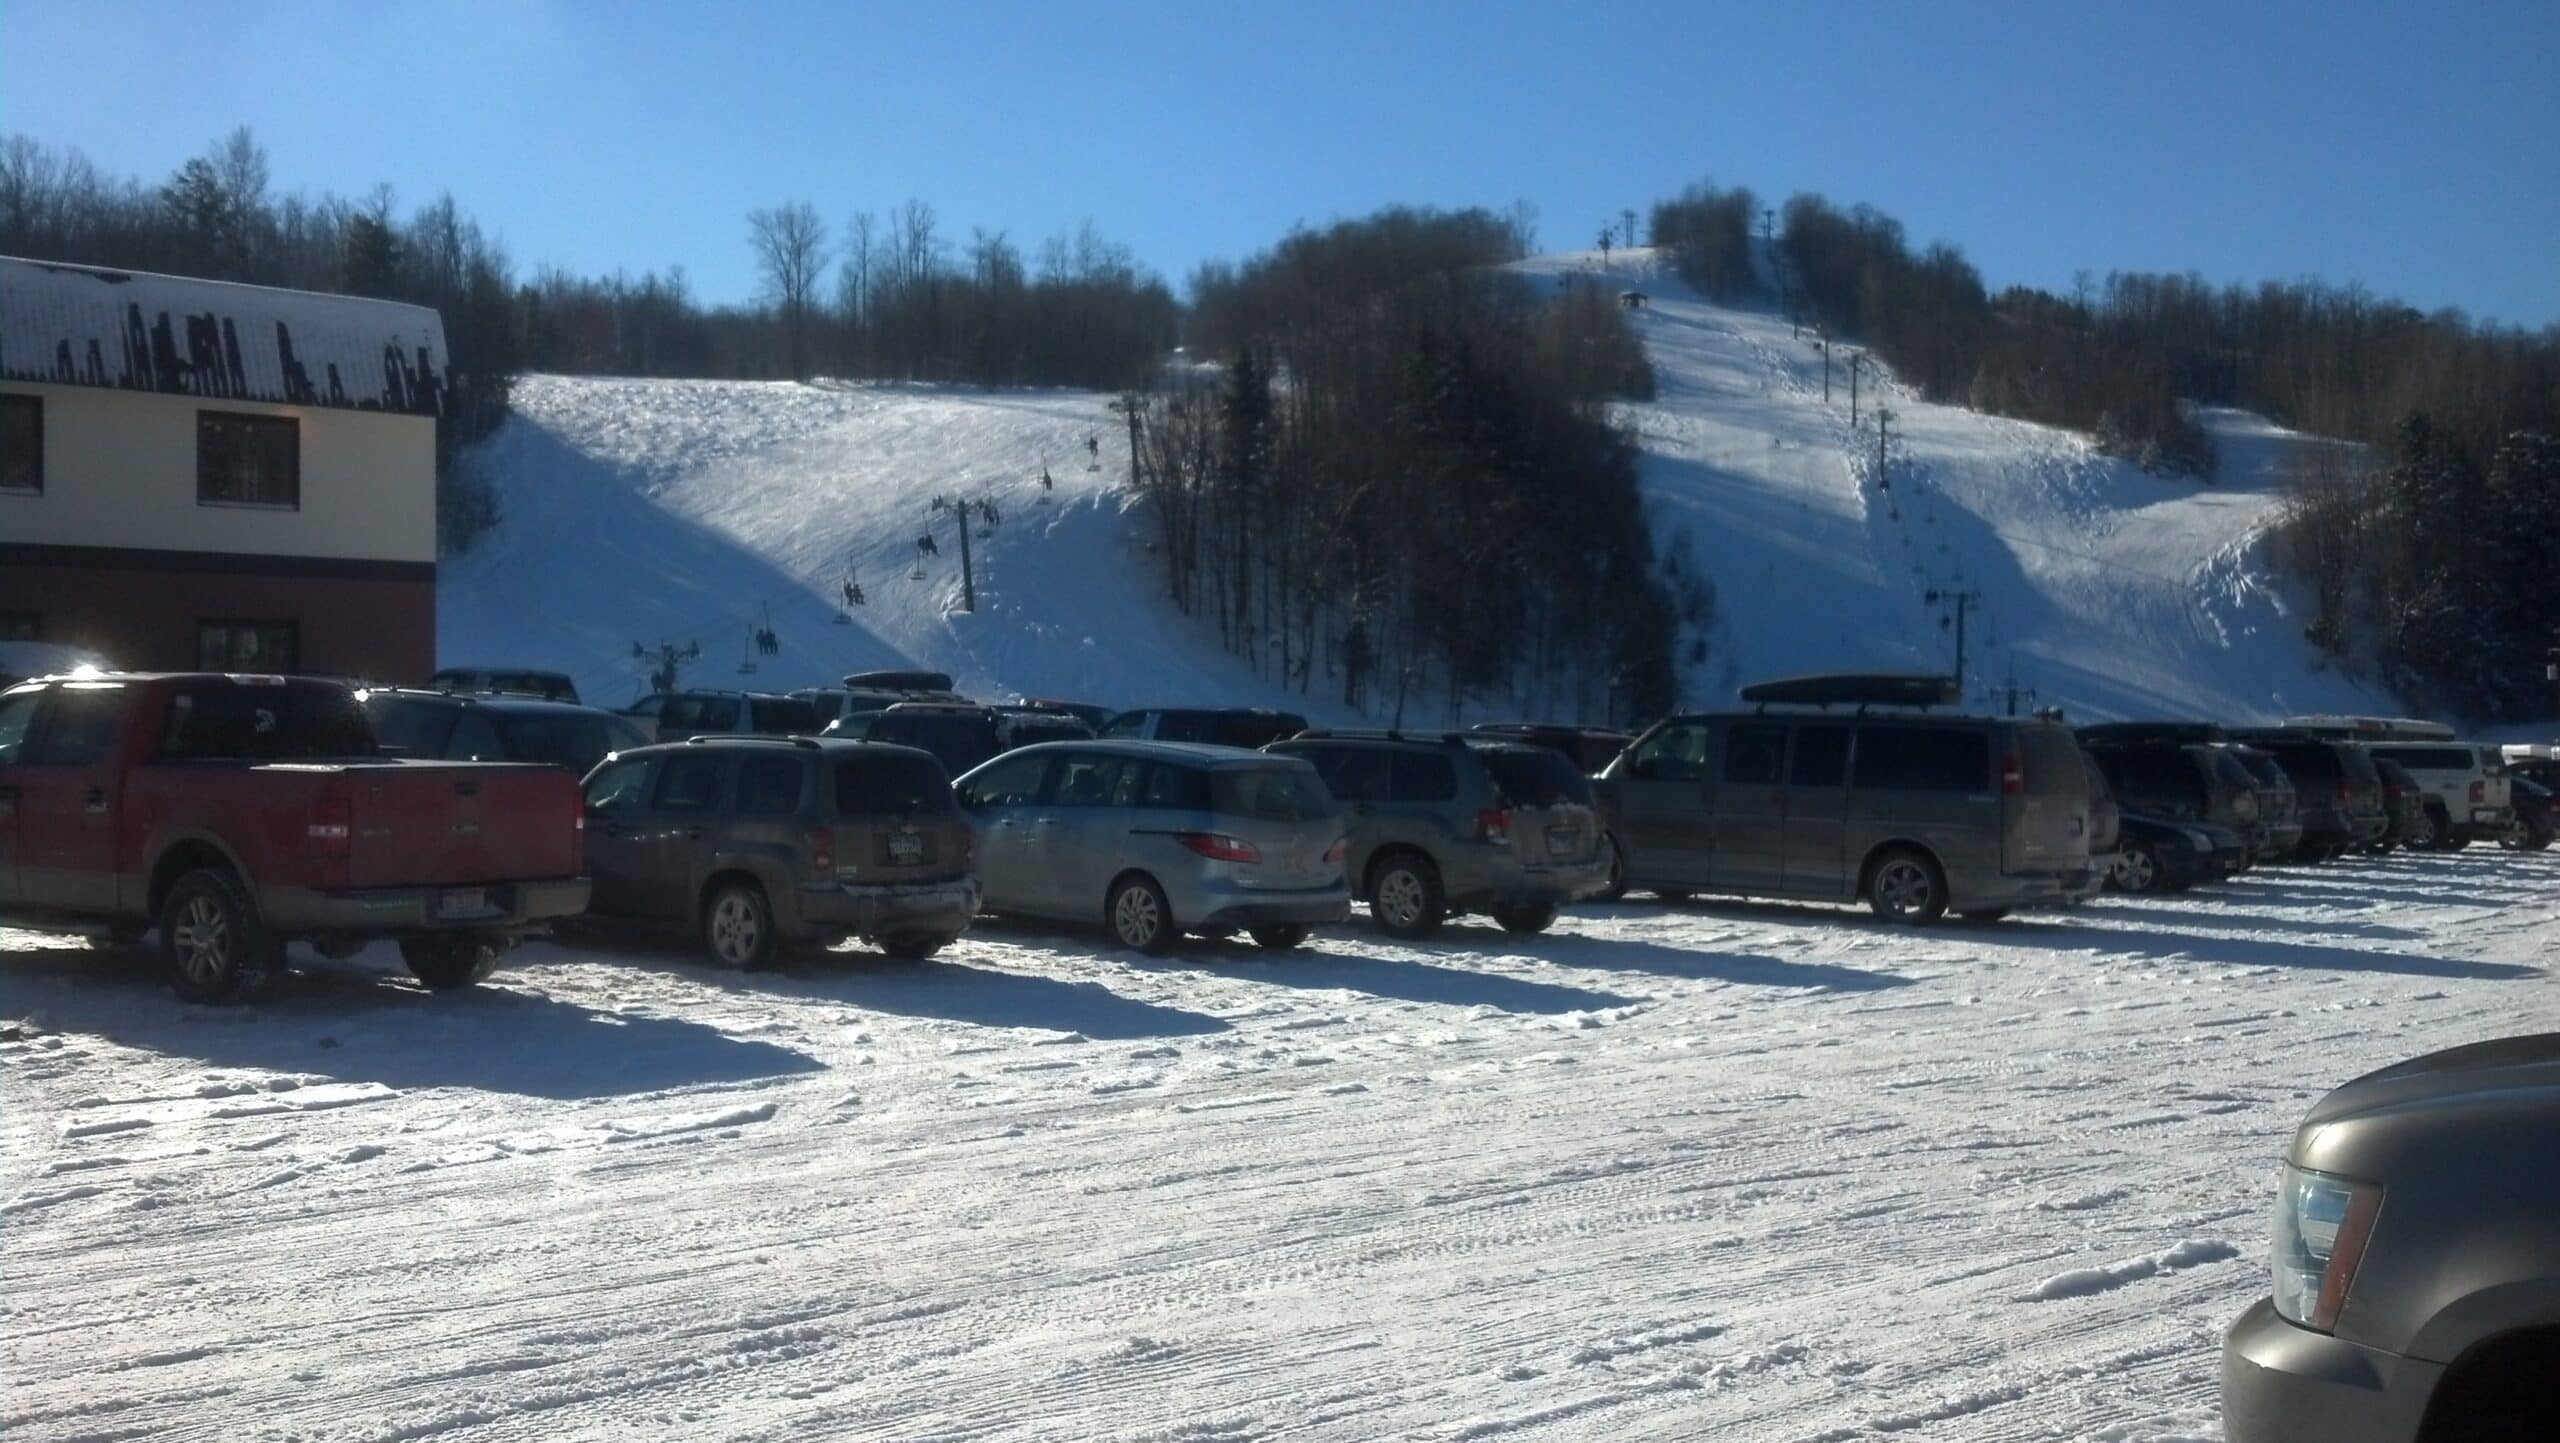 commentary on liftopia's list – the wisconsin skier